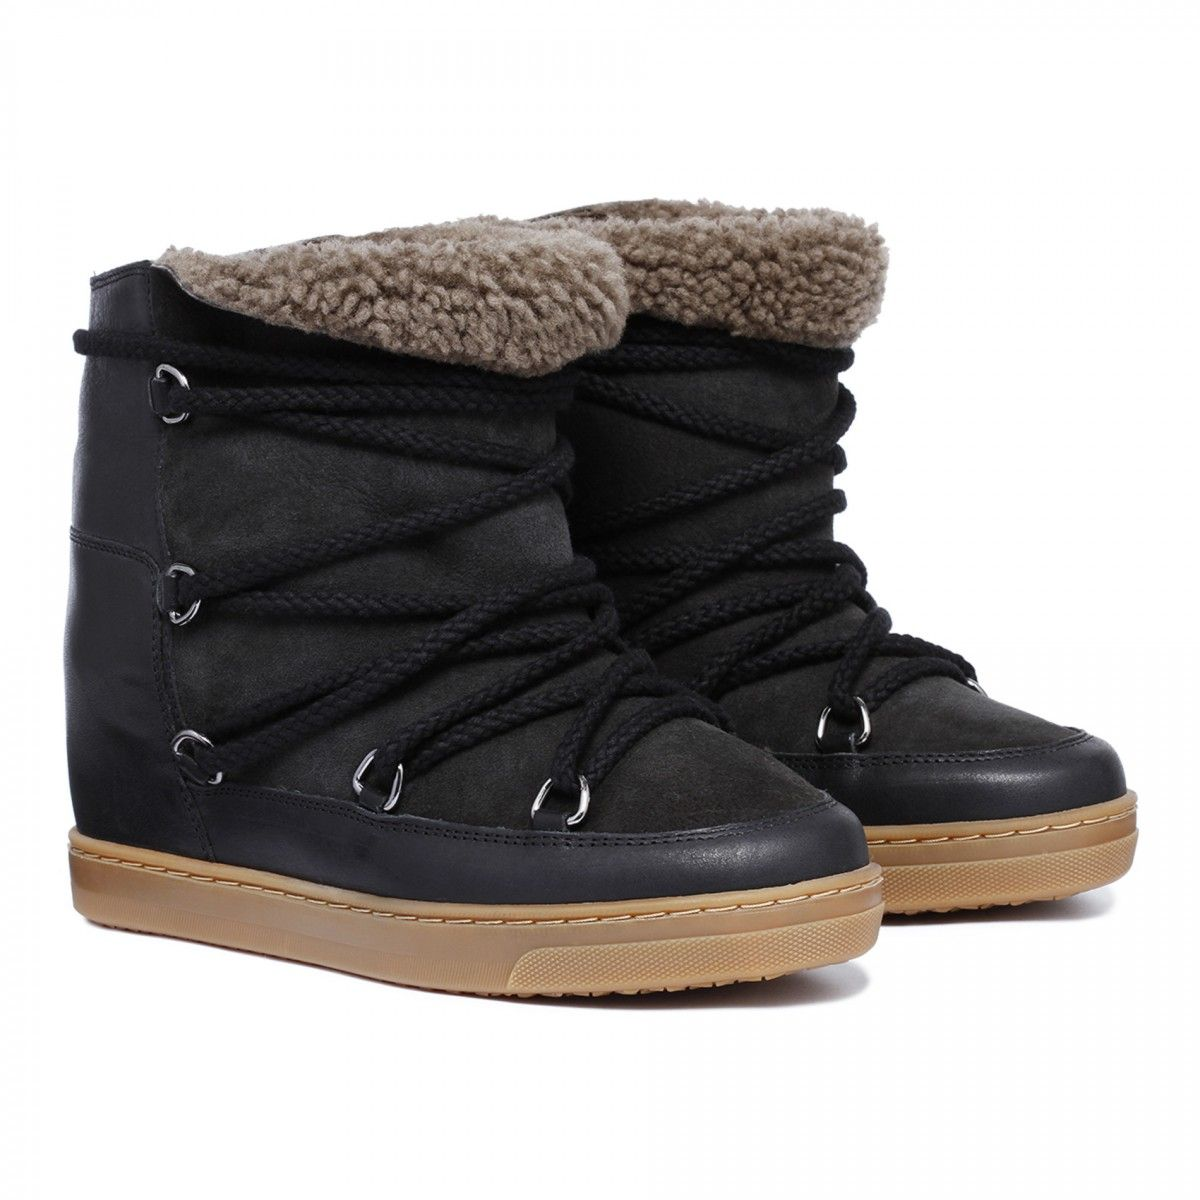 Nowles concealed wedge boots